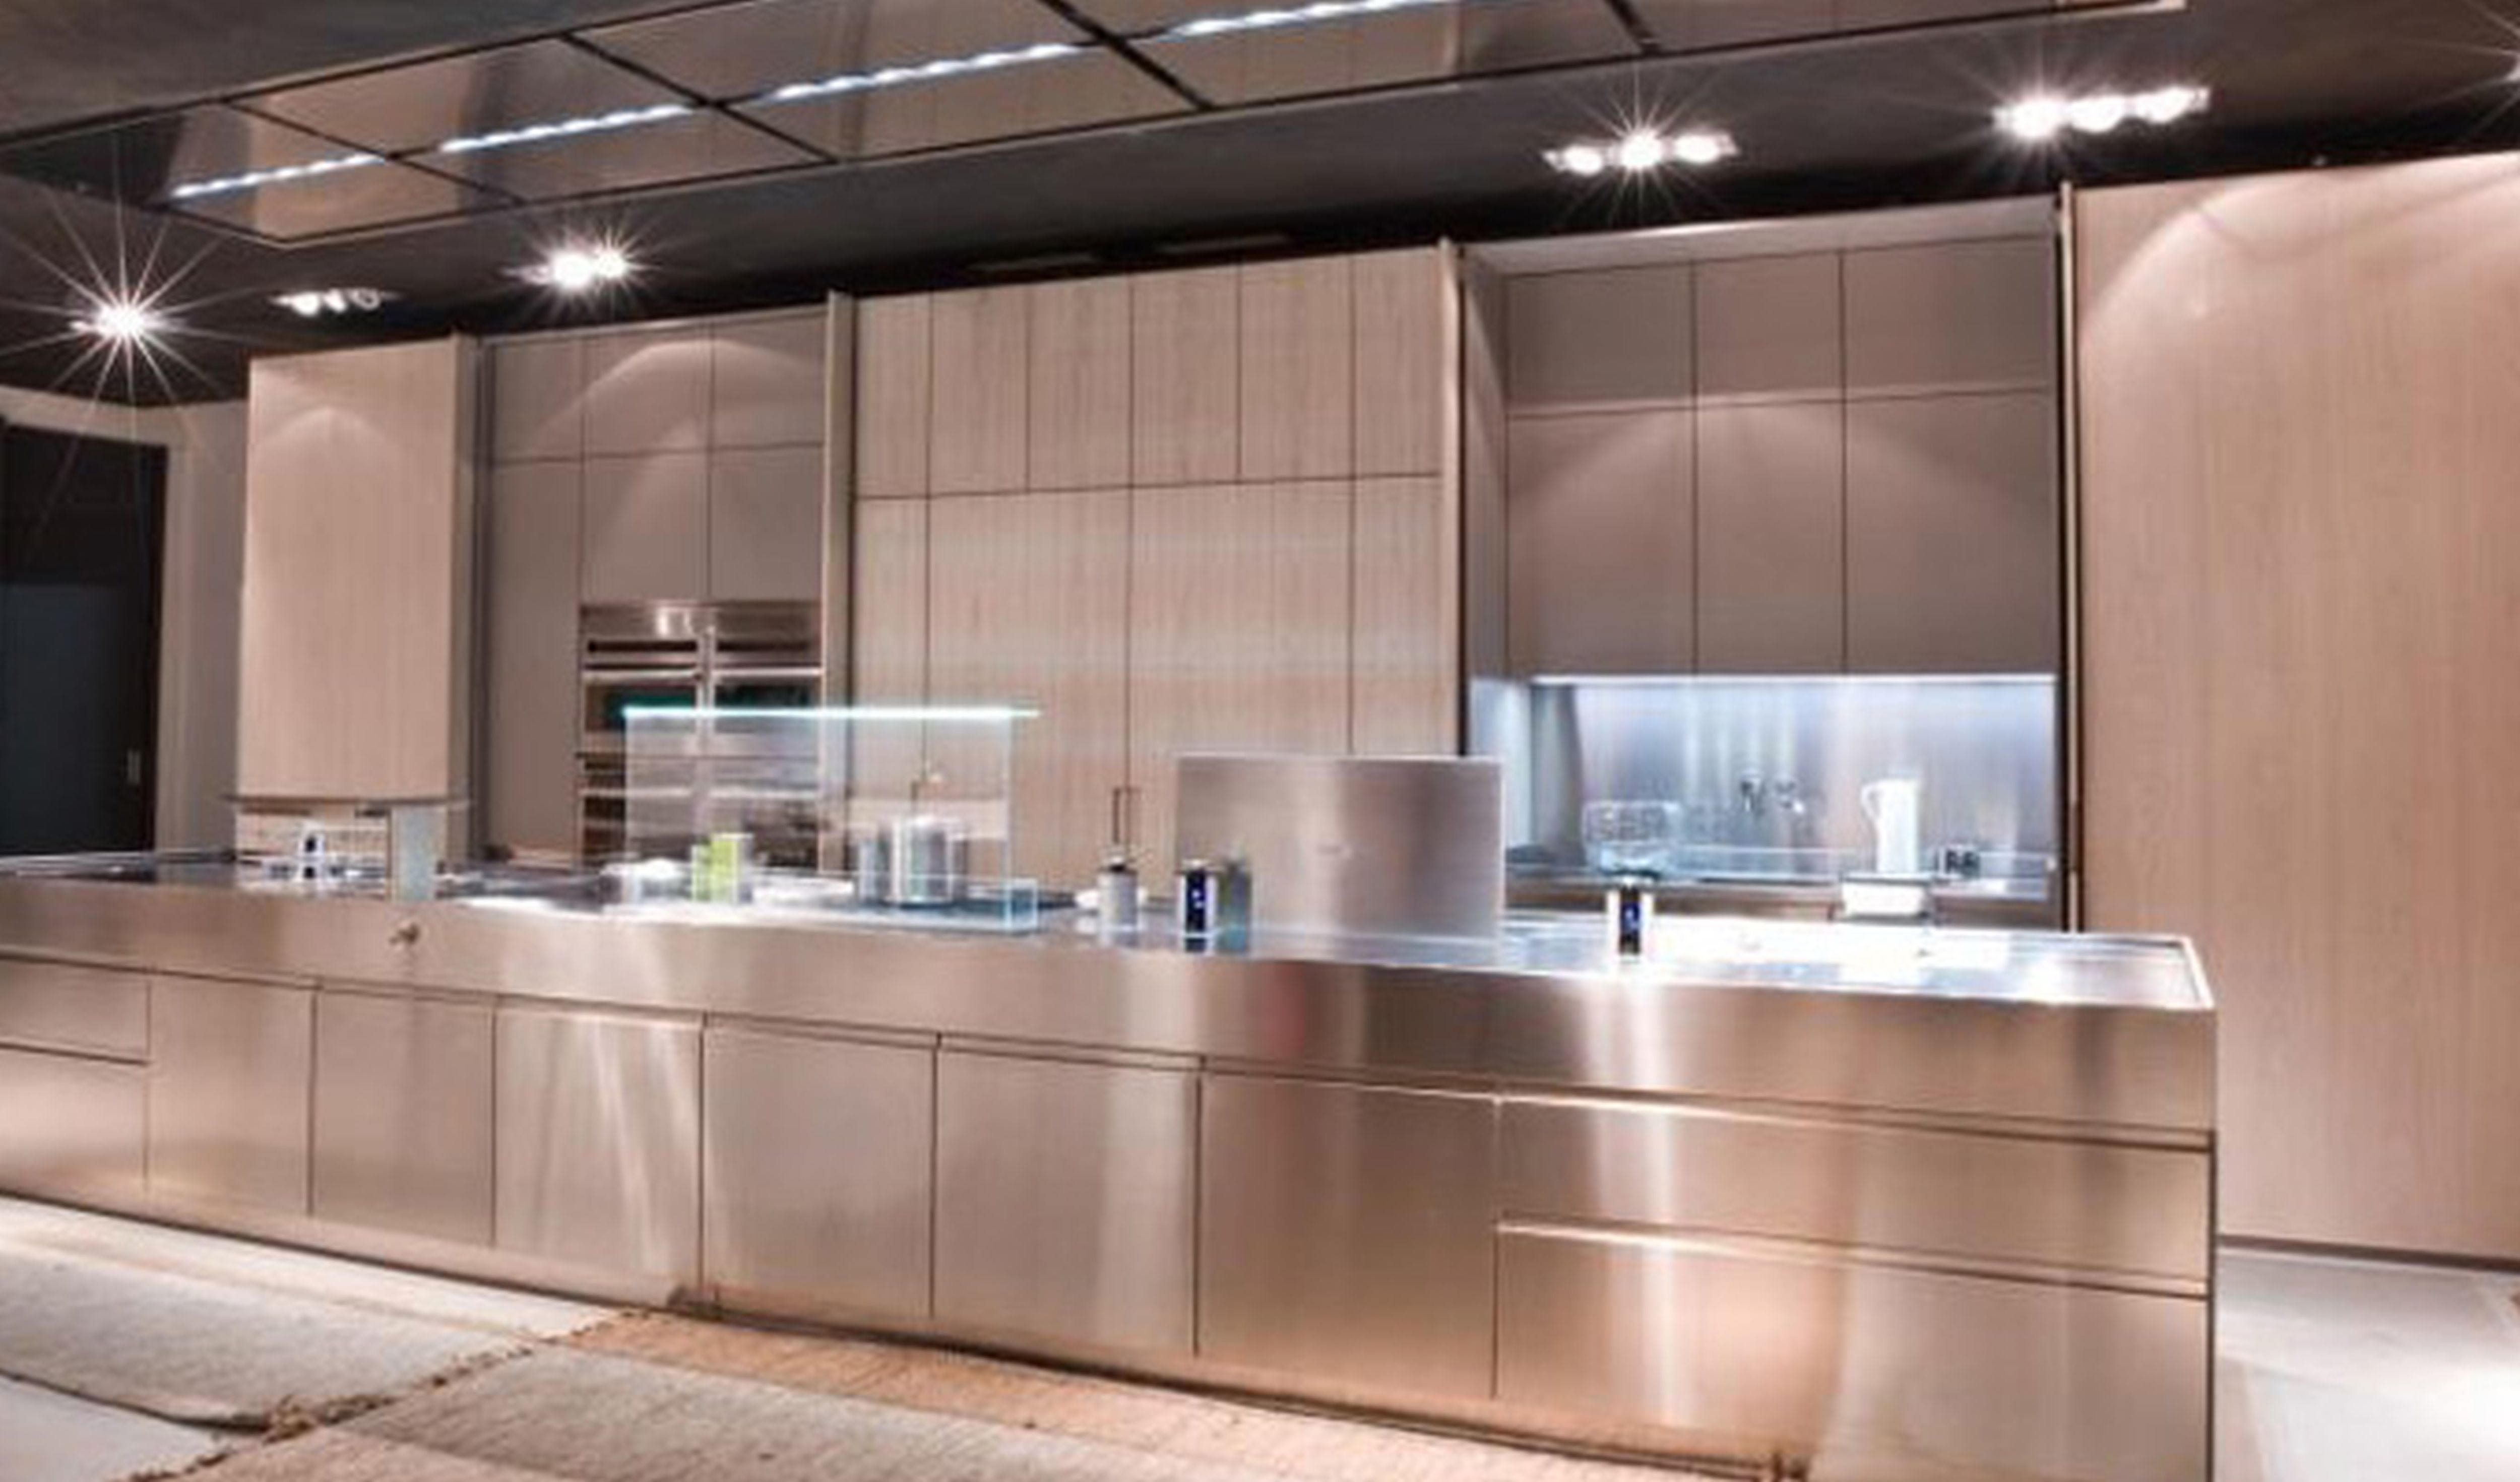 commercial kitchen design budget constraints commercial kitchen design Commercial Kitchen Design and Budget Constraints featured image